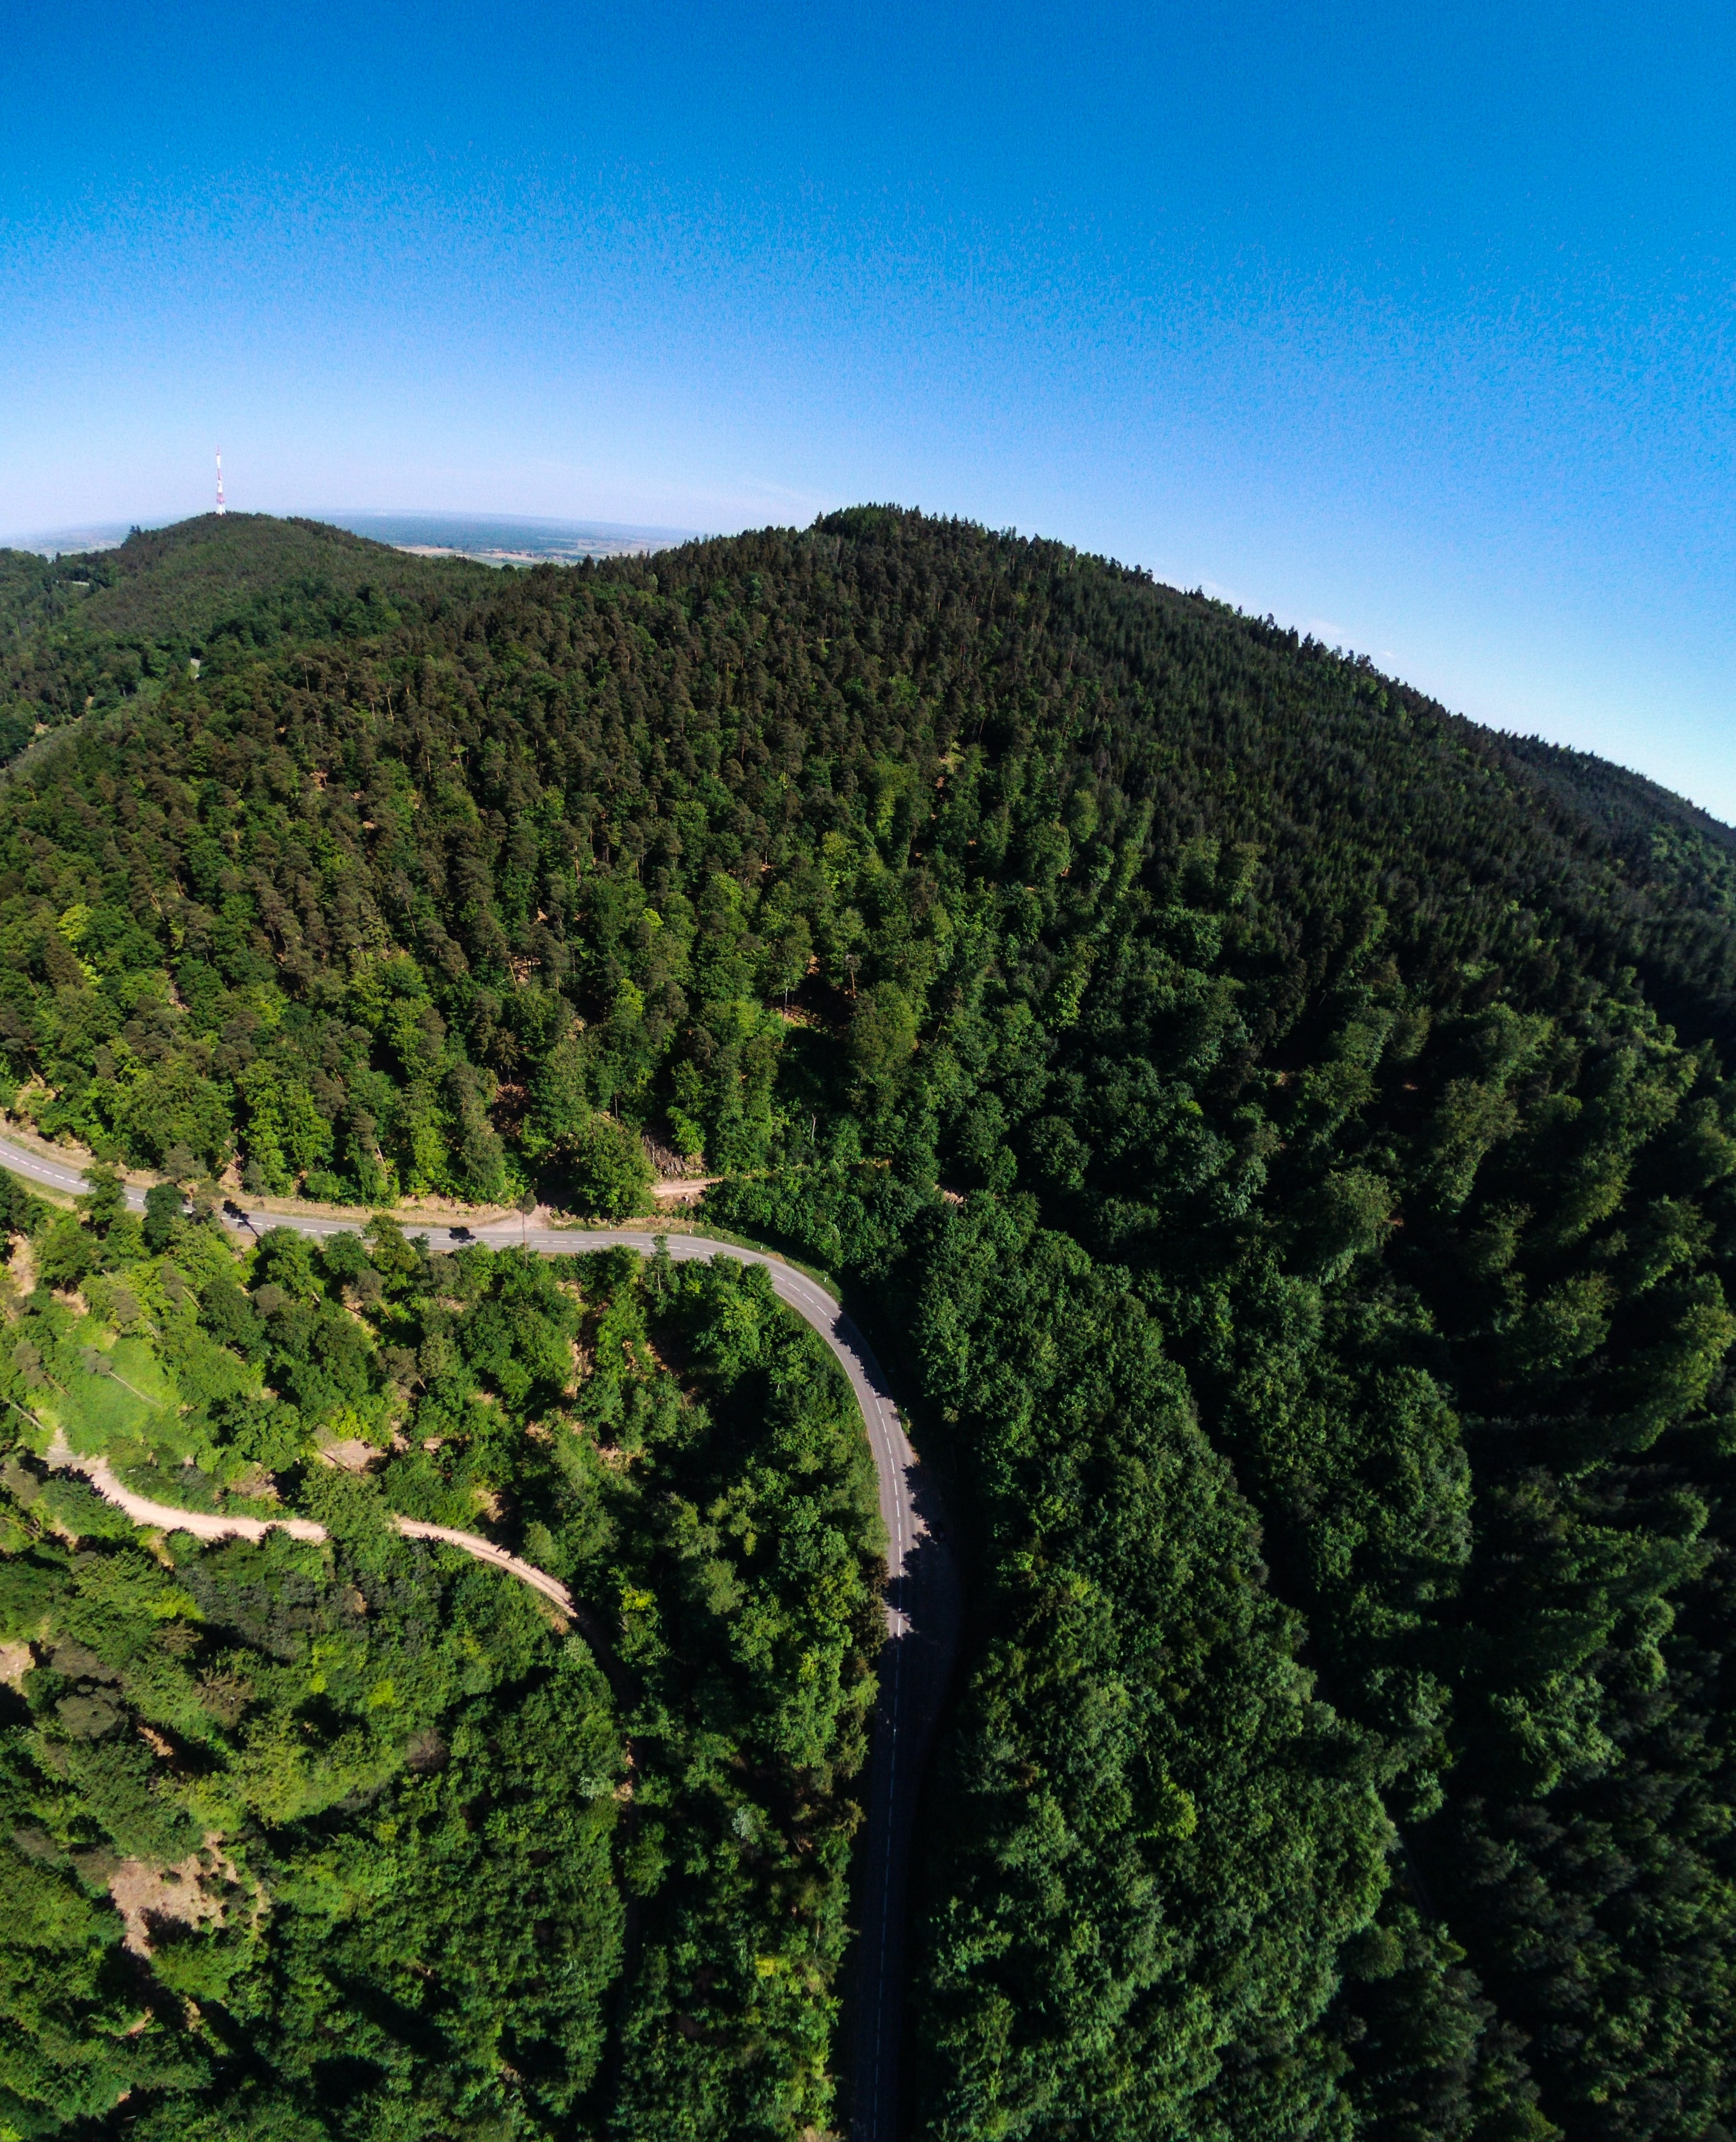 aerial view photography of green forest trees during daytime